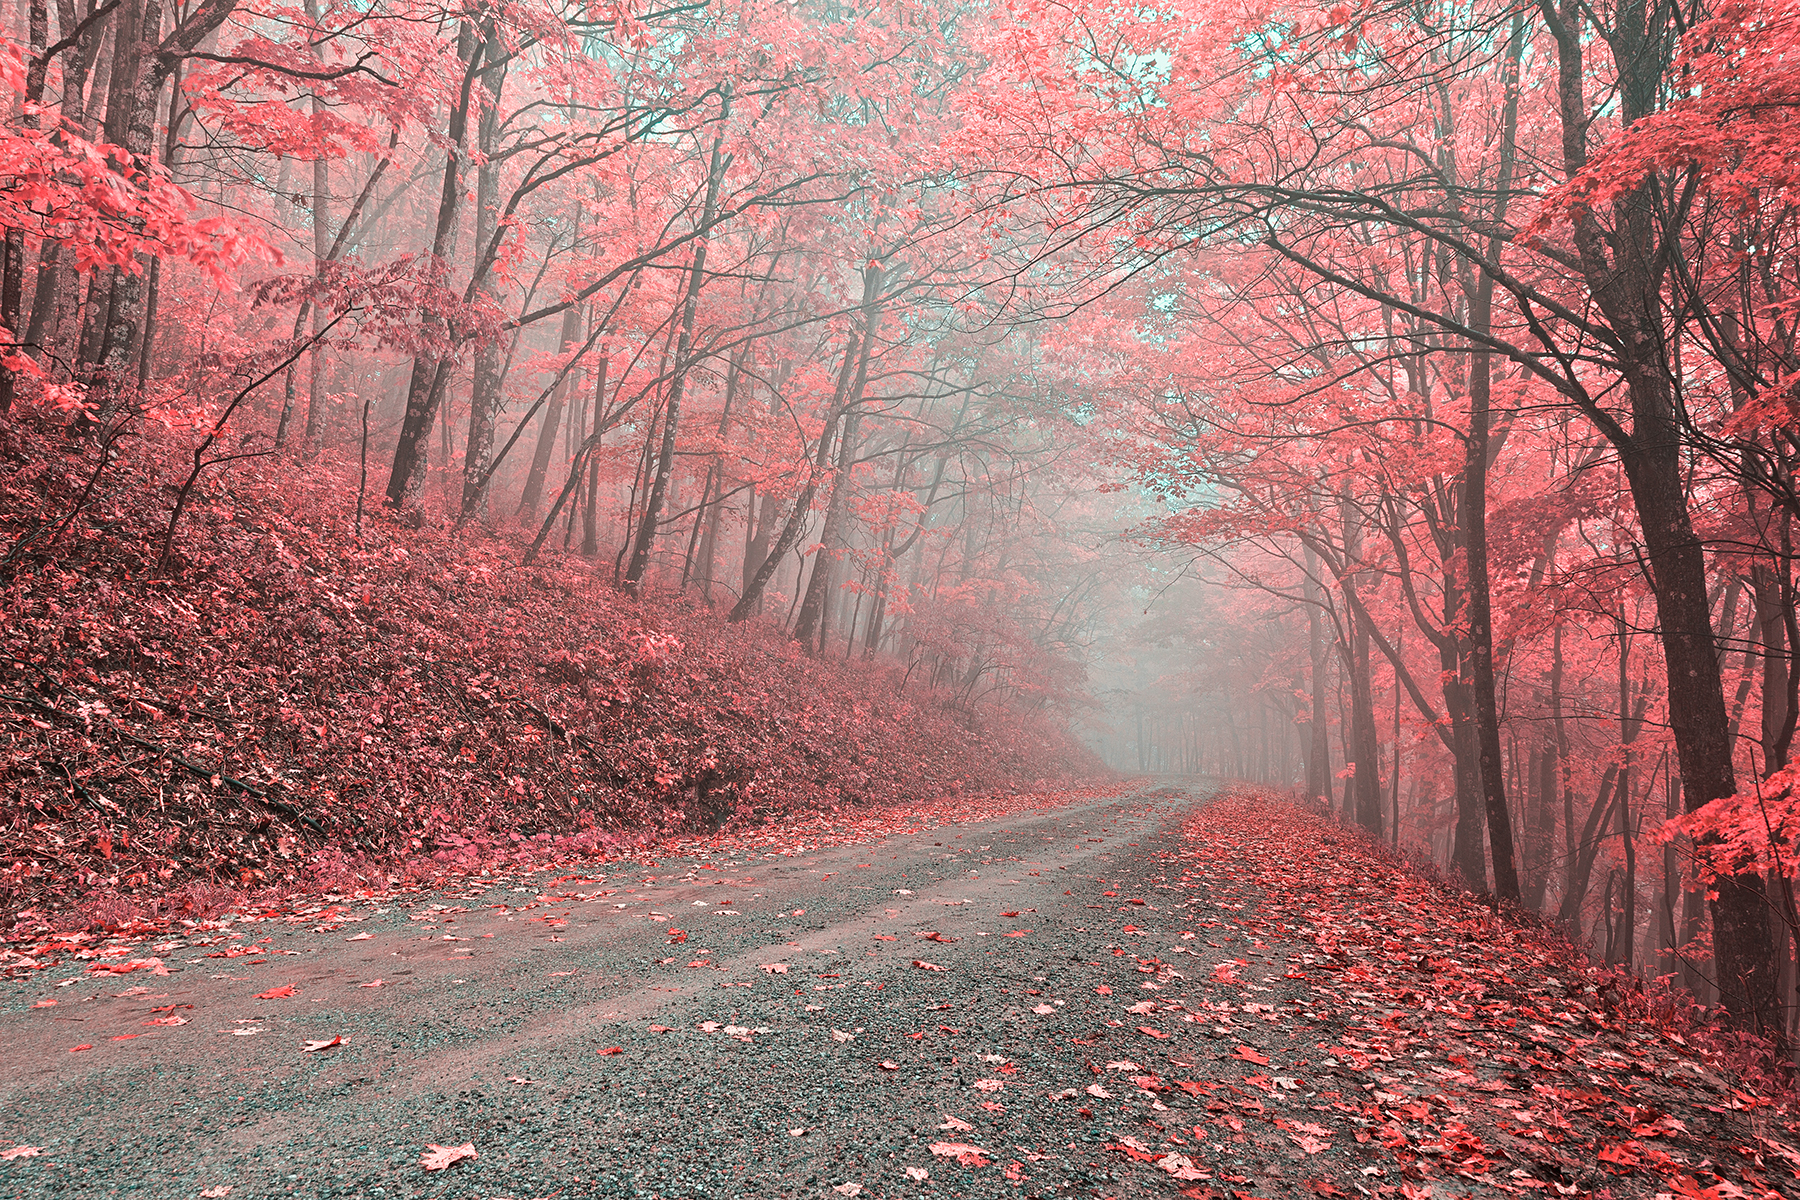 Misty forest road - tickle me pink hdr photo